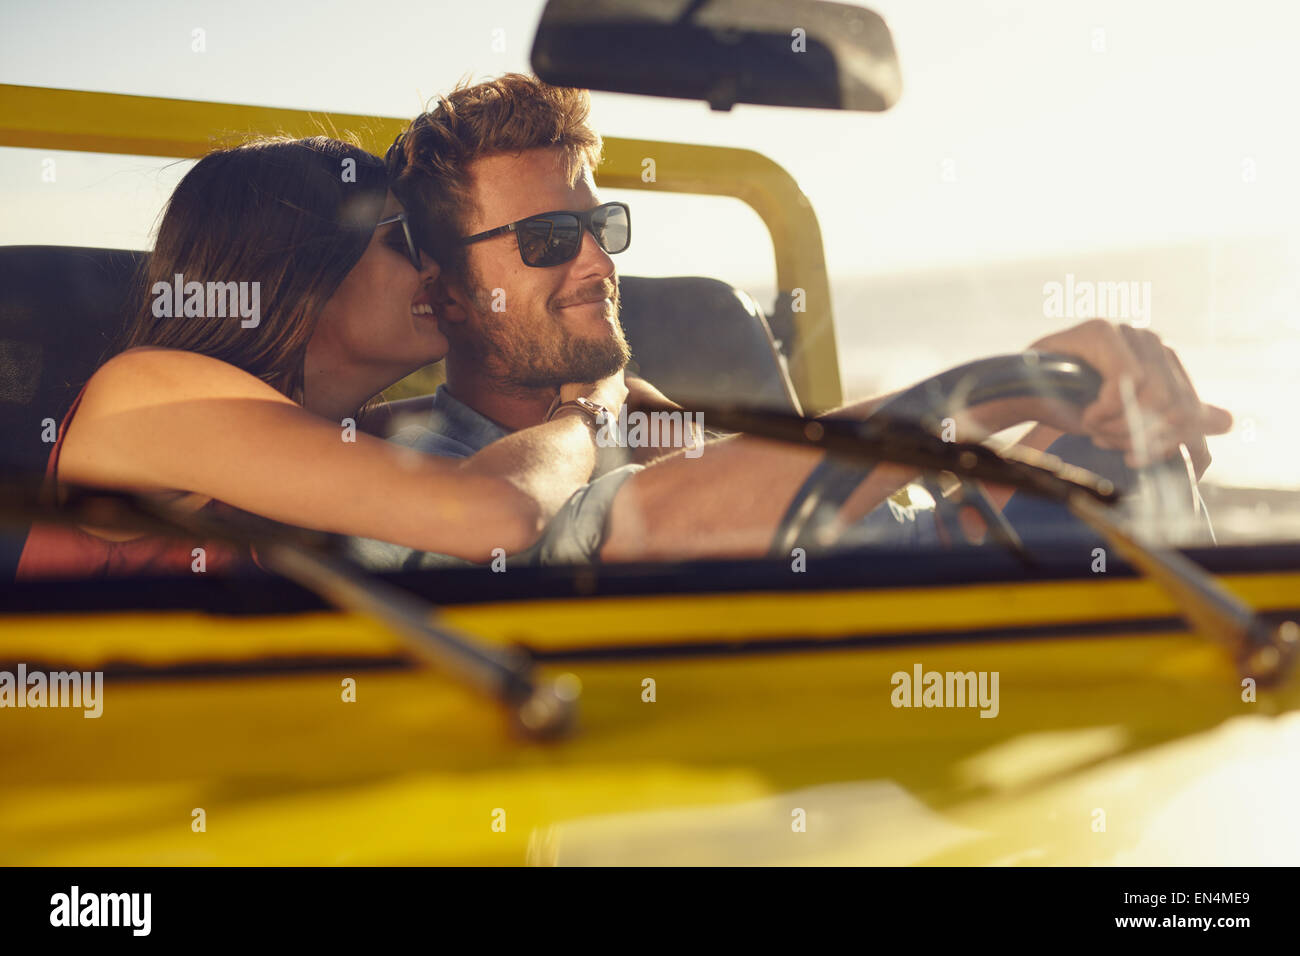 Romantic young couple sharing a special moment while on a road trip. Man driving car with girlfriend. - Stock Image